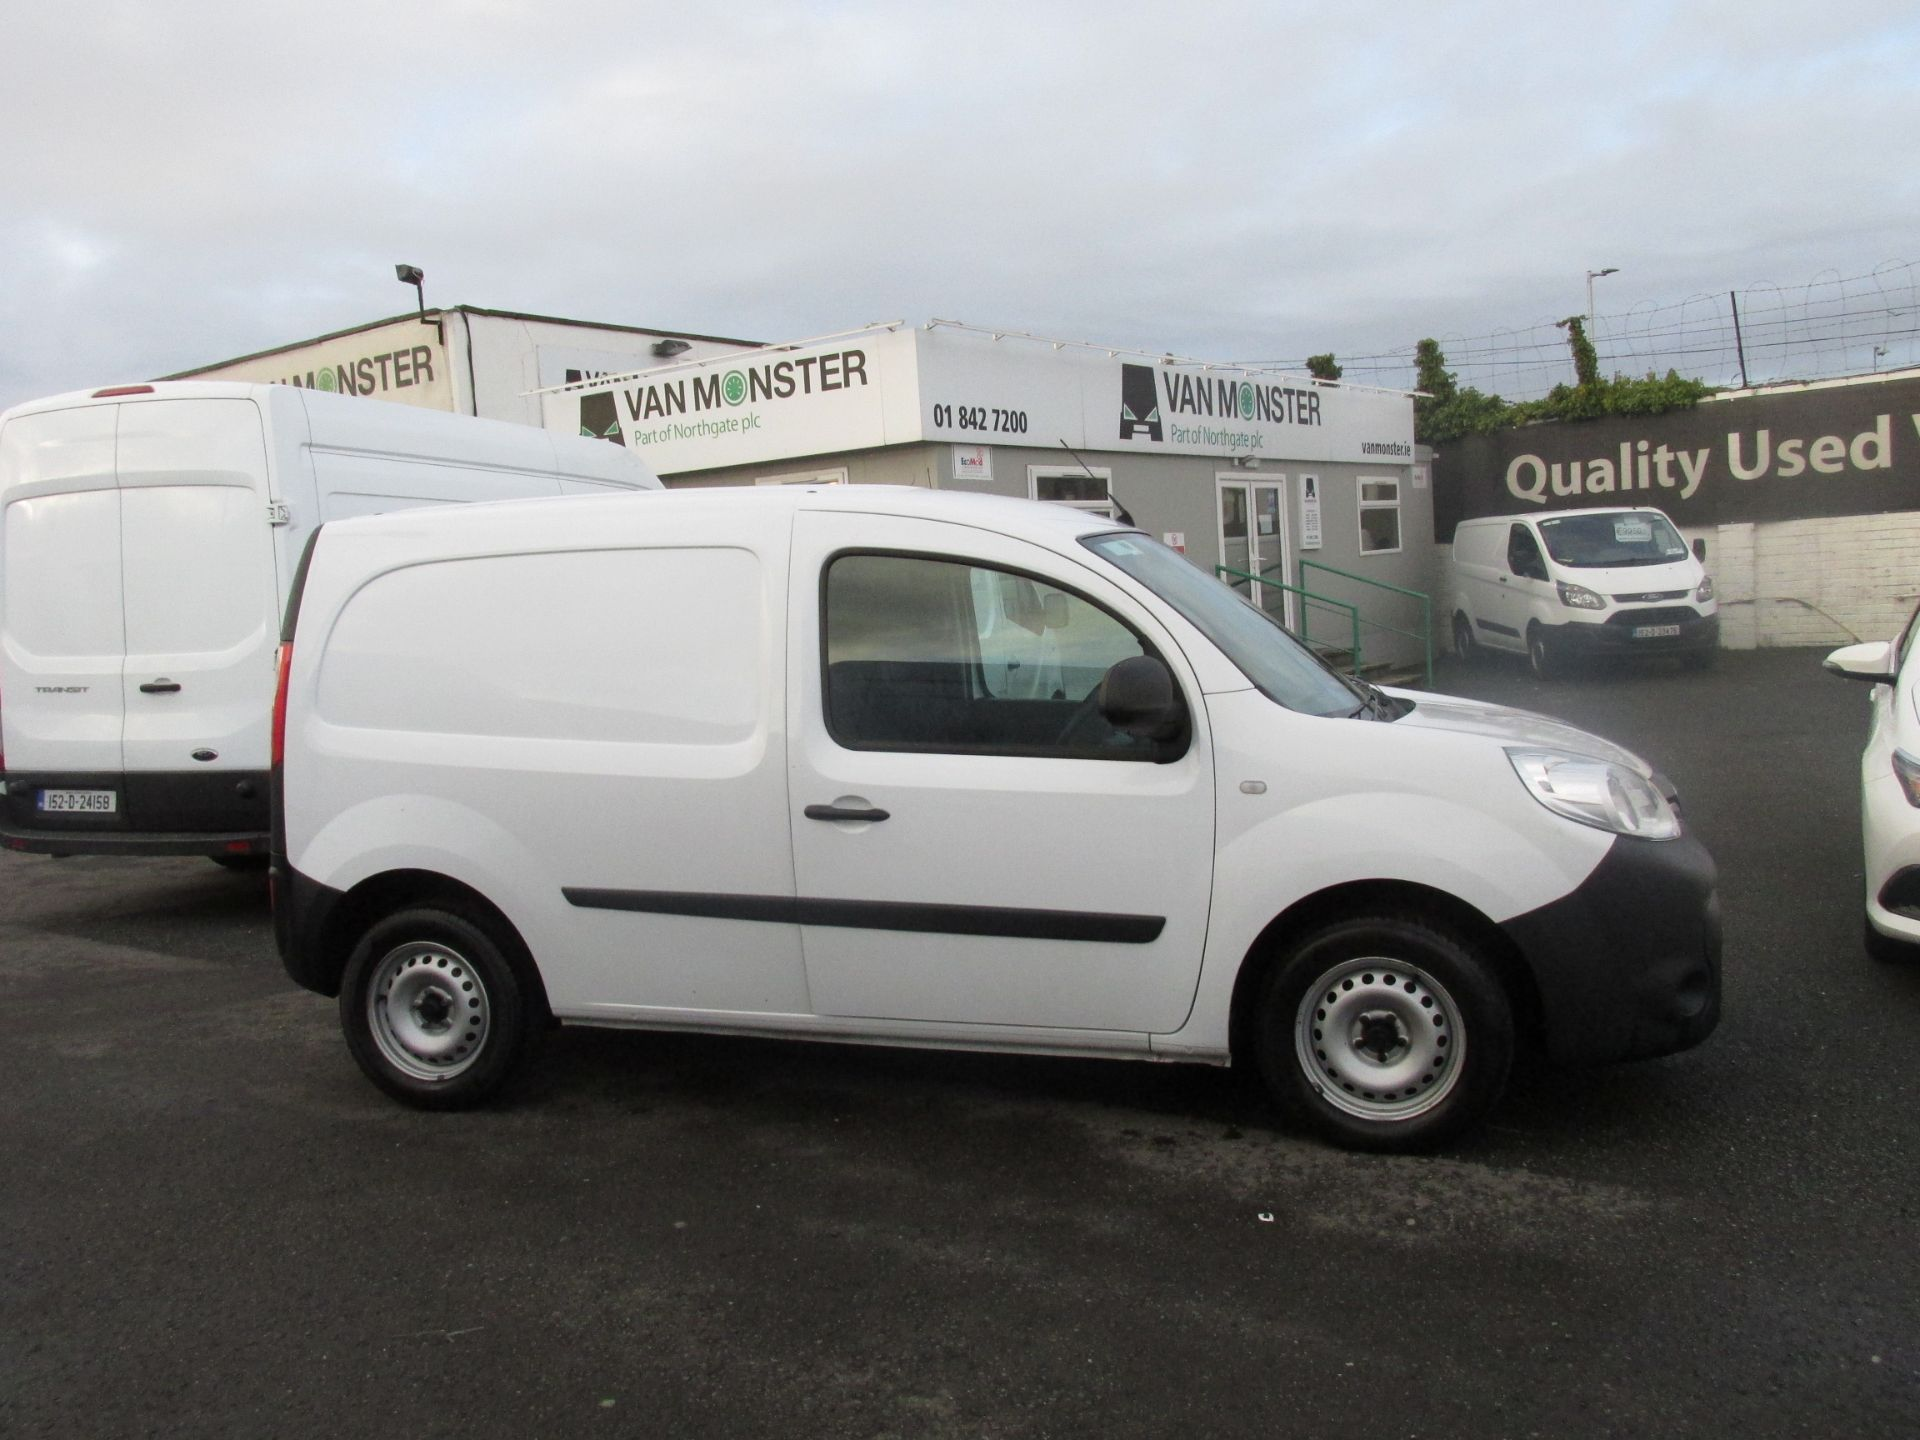 2016 Renault Kangoo ML19 Energy DCI 75 Business 2D - 100 VANS TO VIEW IN VM SANTRY DUBLIN - (162D21651) Image 2